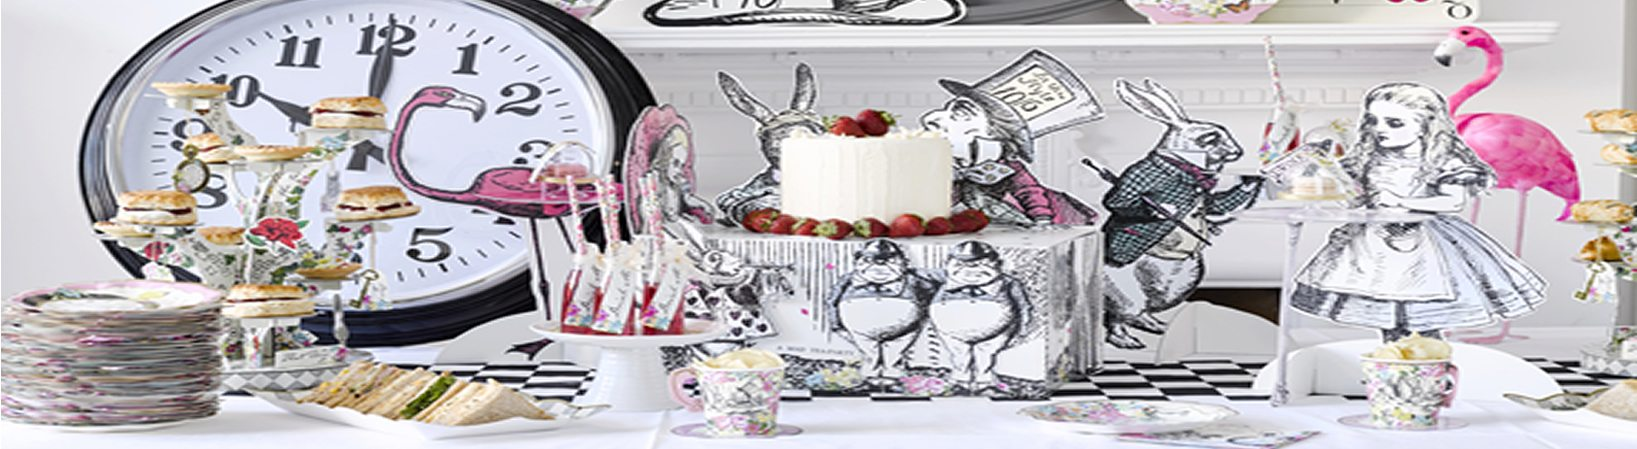 Buy Alice in Wonderland themed party decorations, novelties & plates in stock in the uk next day delivery